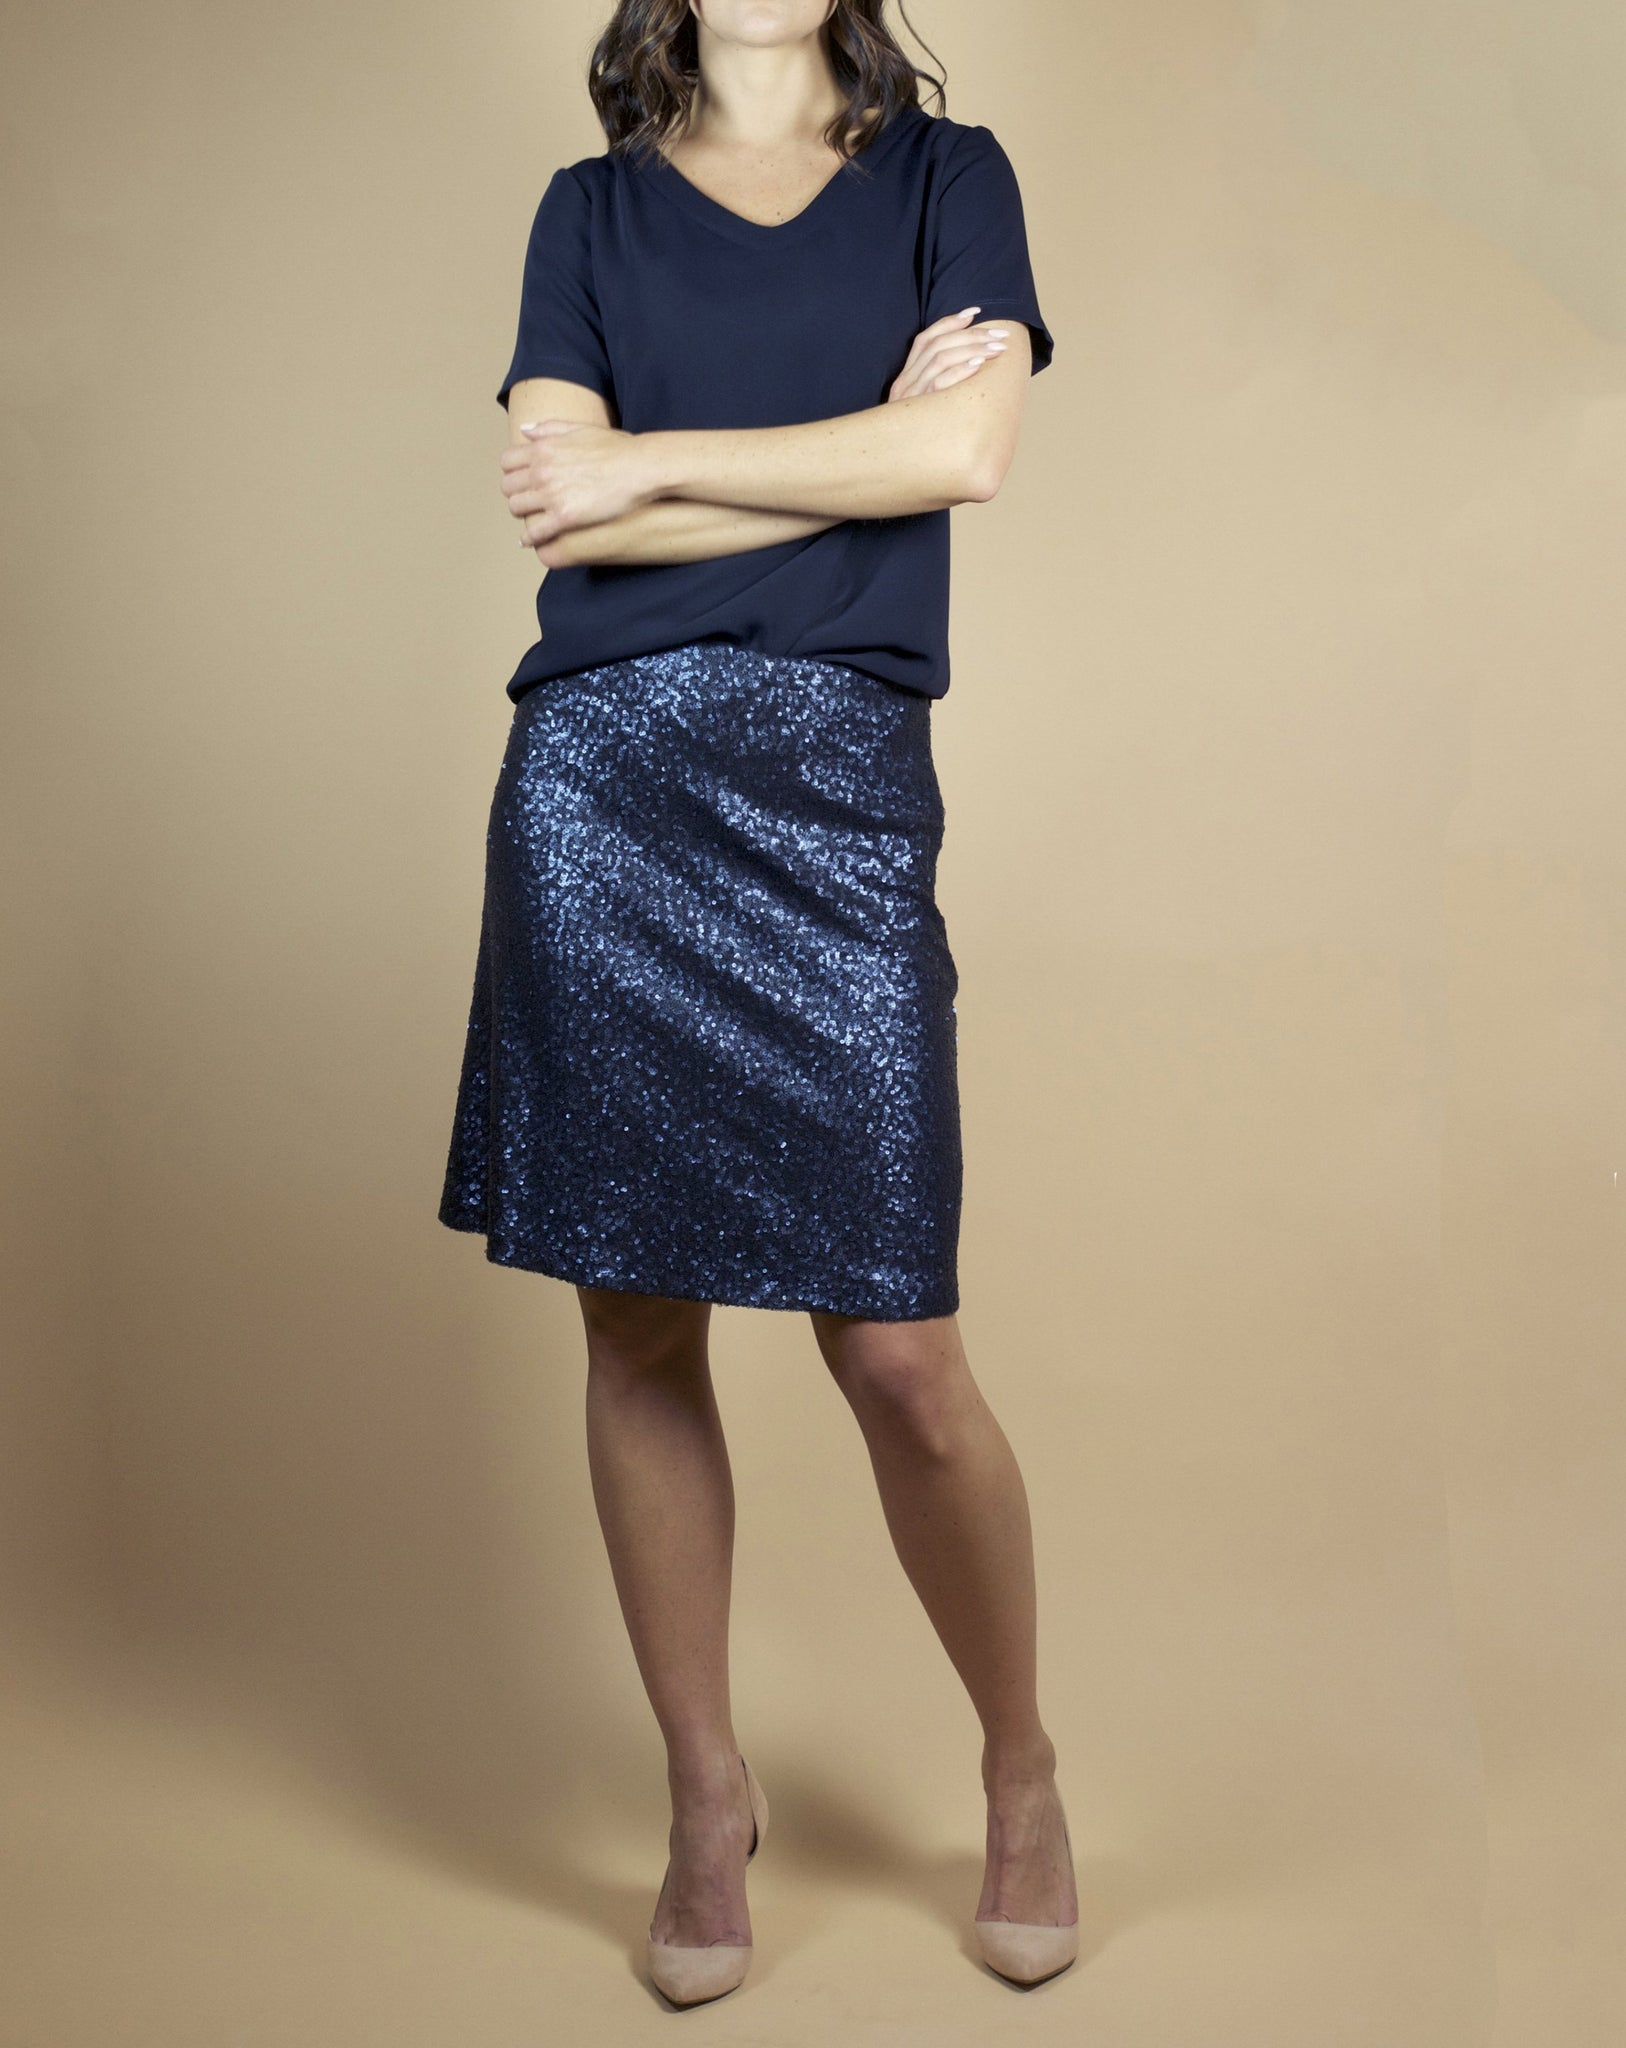 Skirt Jackie in midnight sequins